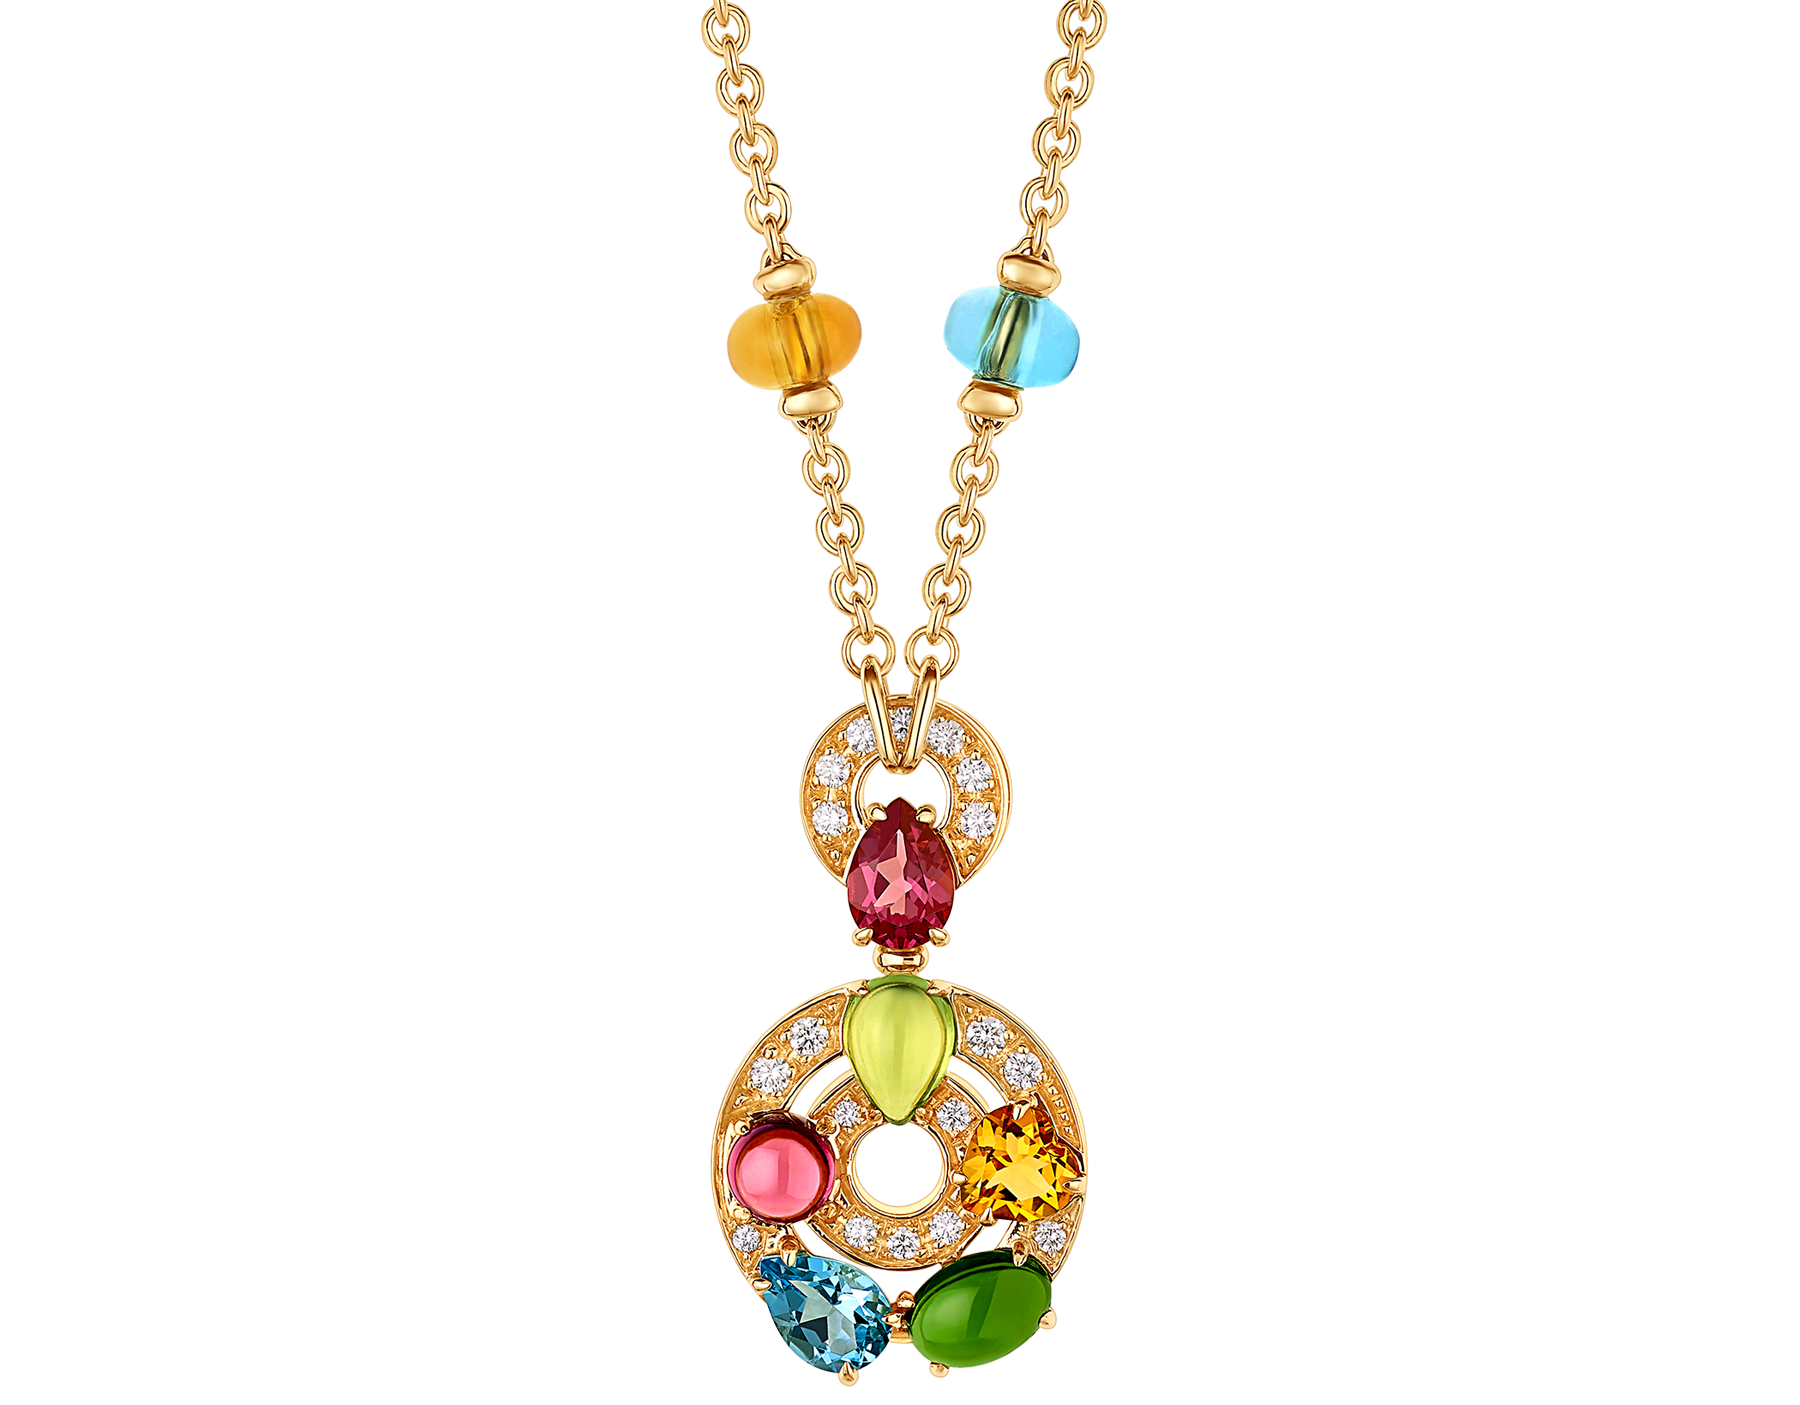 Cerchi 18 kt yellow gold large pendant necklace set with blue topazes, amethysts, green tourmalines, peridots, citrine quartz, rhodolite garnets and pavé diamonds 339139 image 1